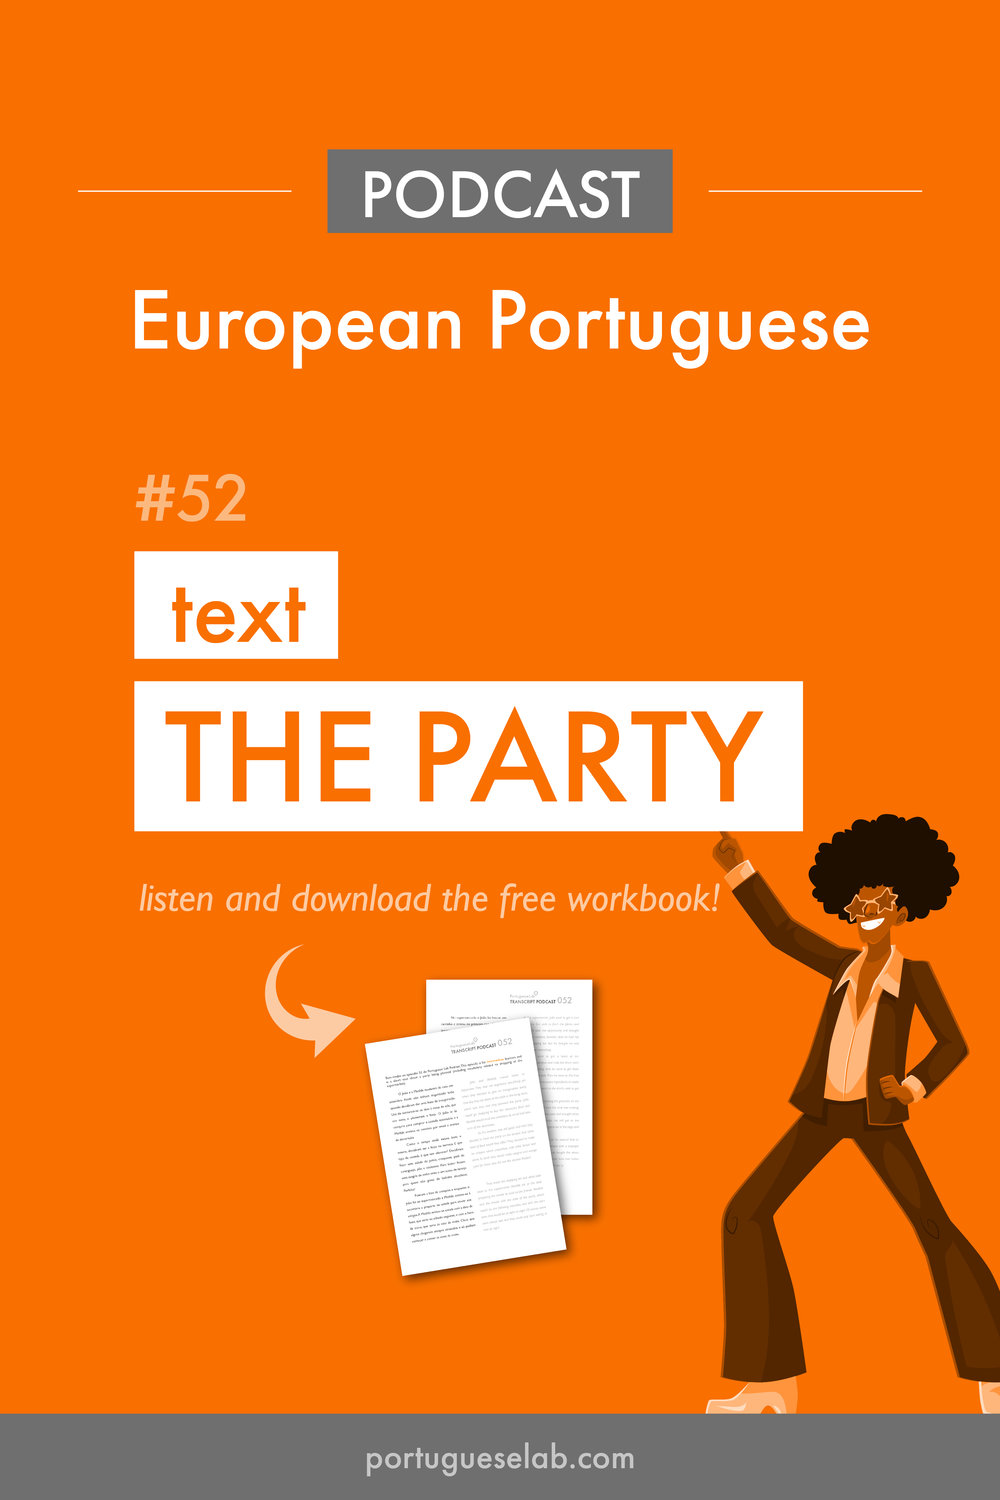 Portuguese Lab Podcast - European Portuguese - 52 - Text - The party.jpg